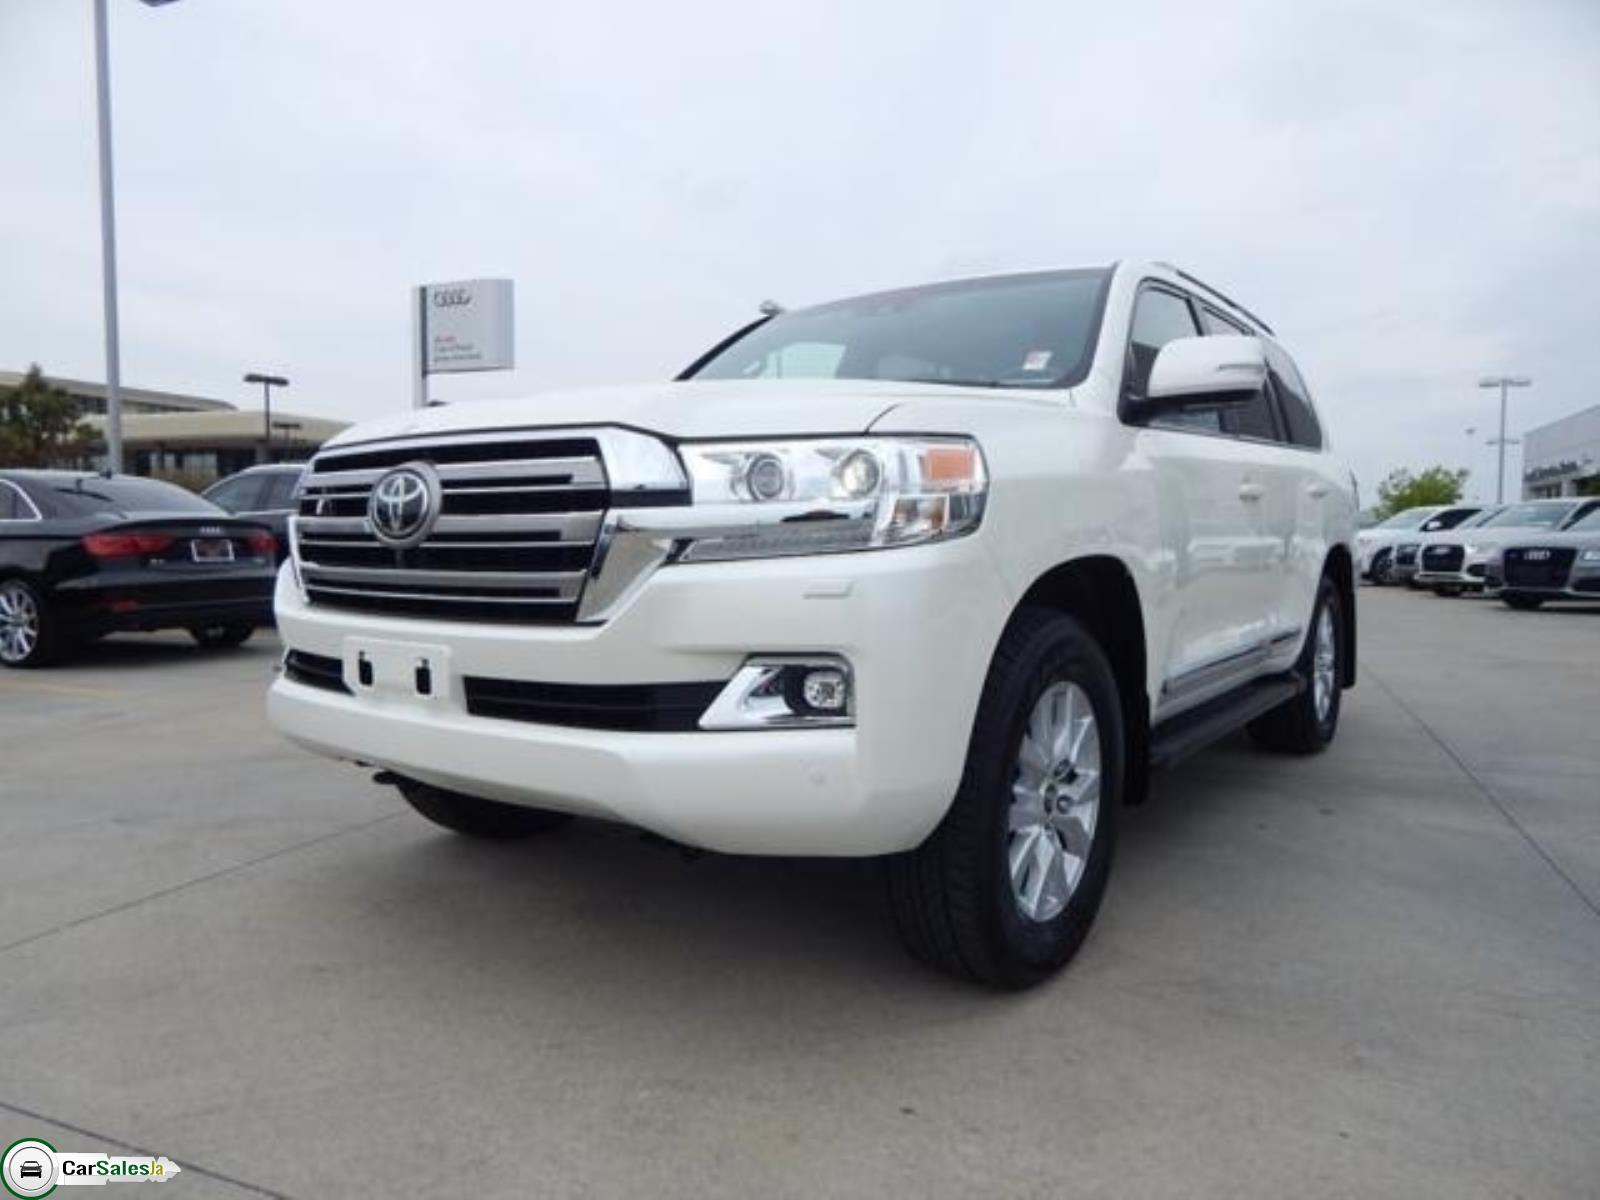 Cars for sale in Jamaica, Toyota LandCruiser Car for sale in Jamaica